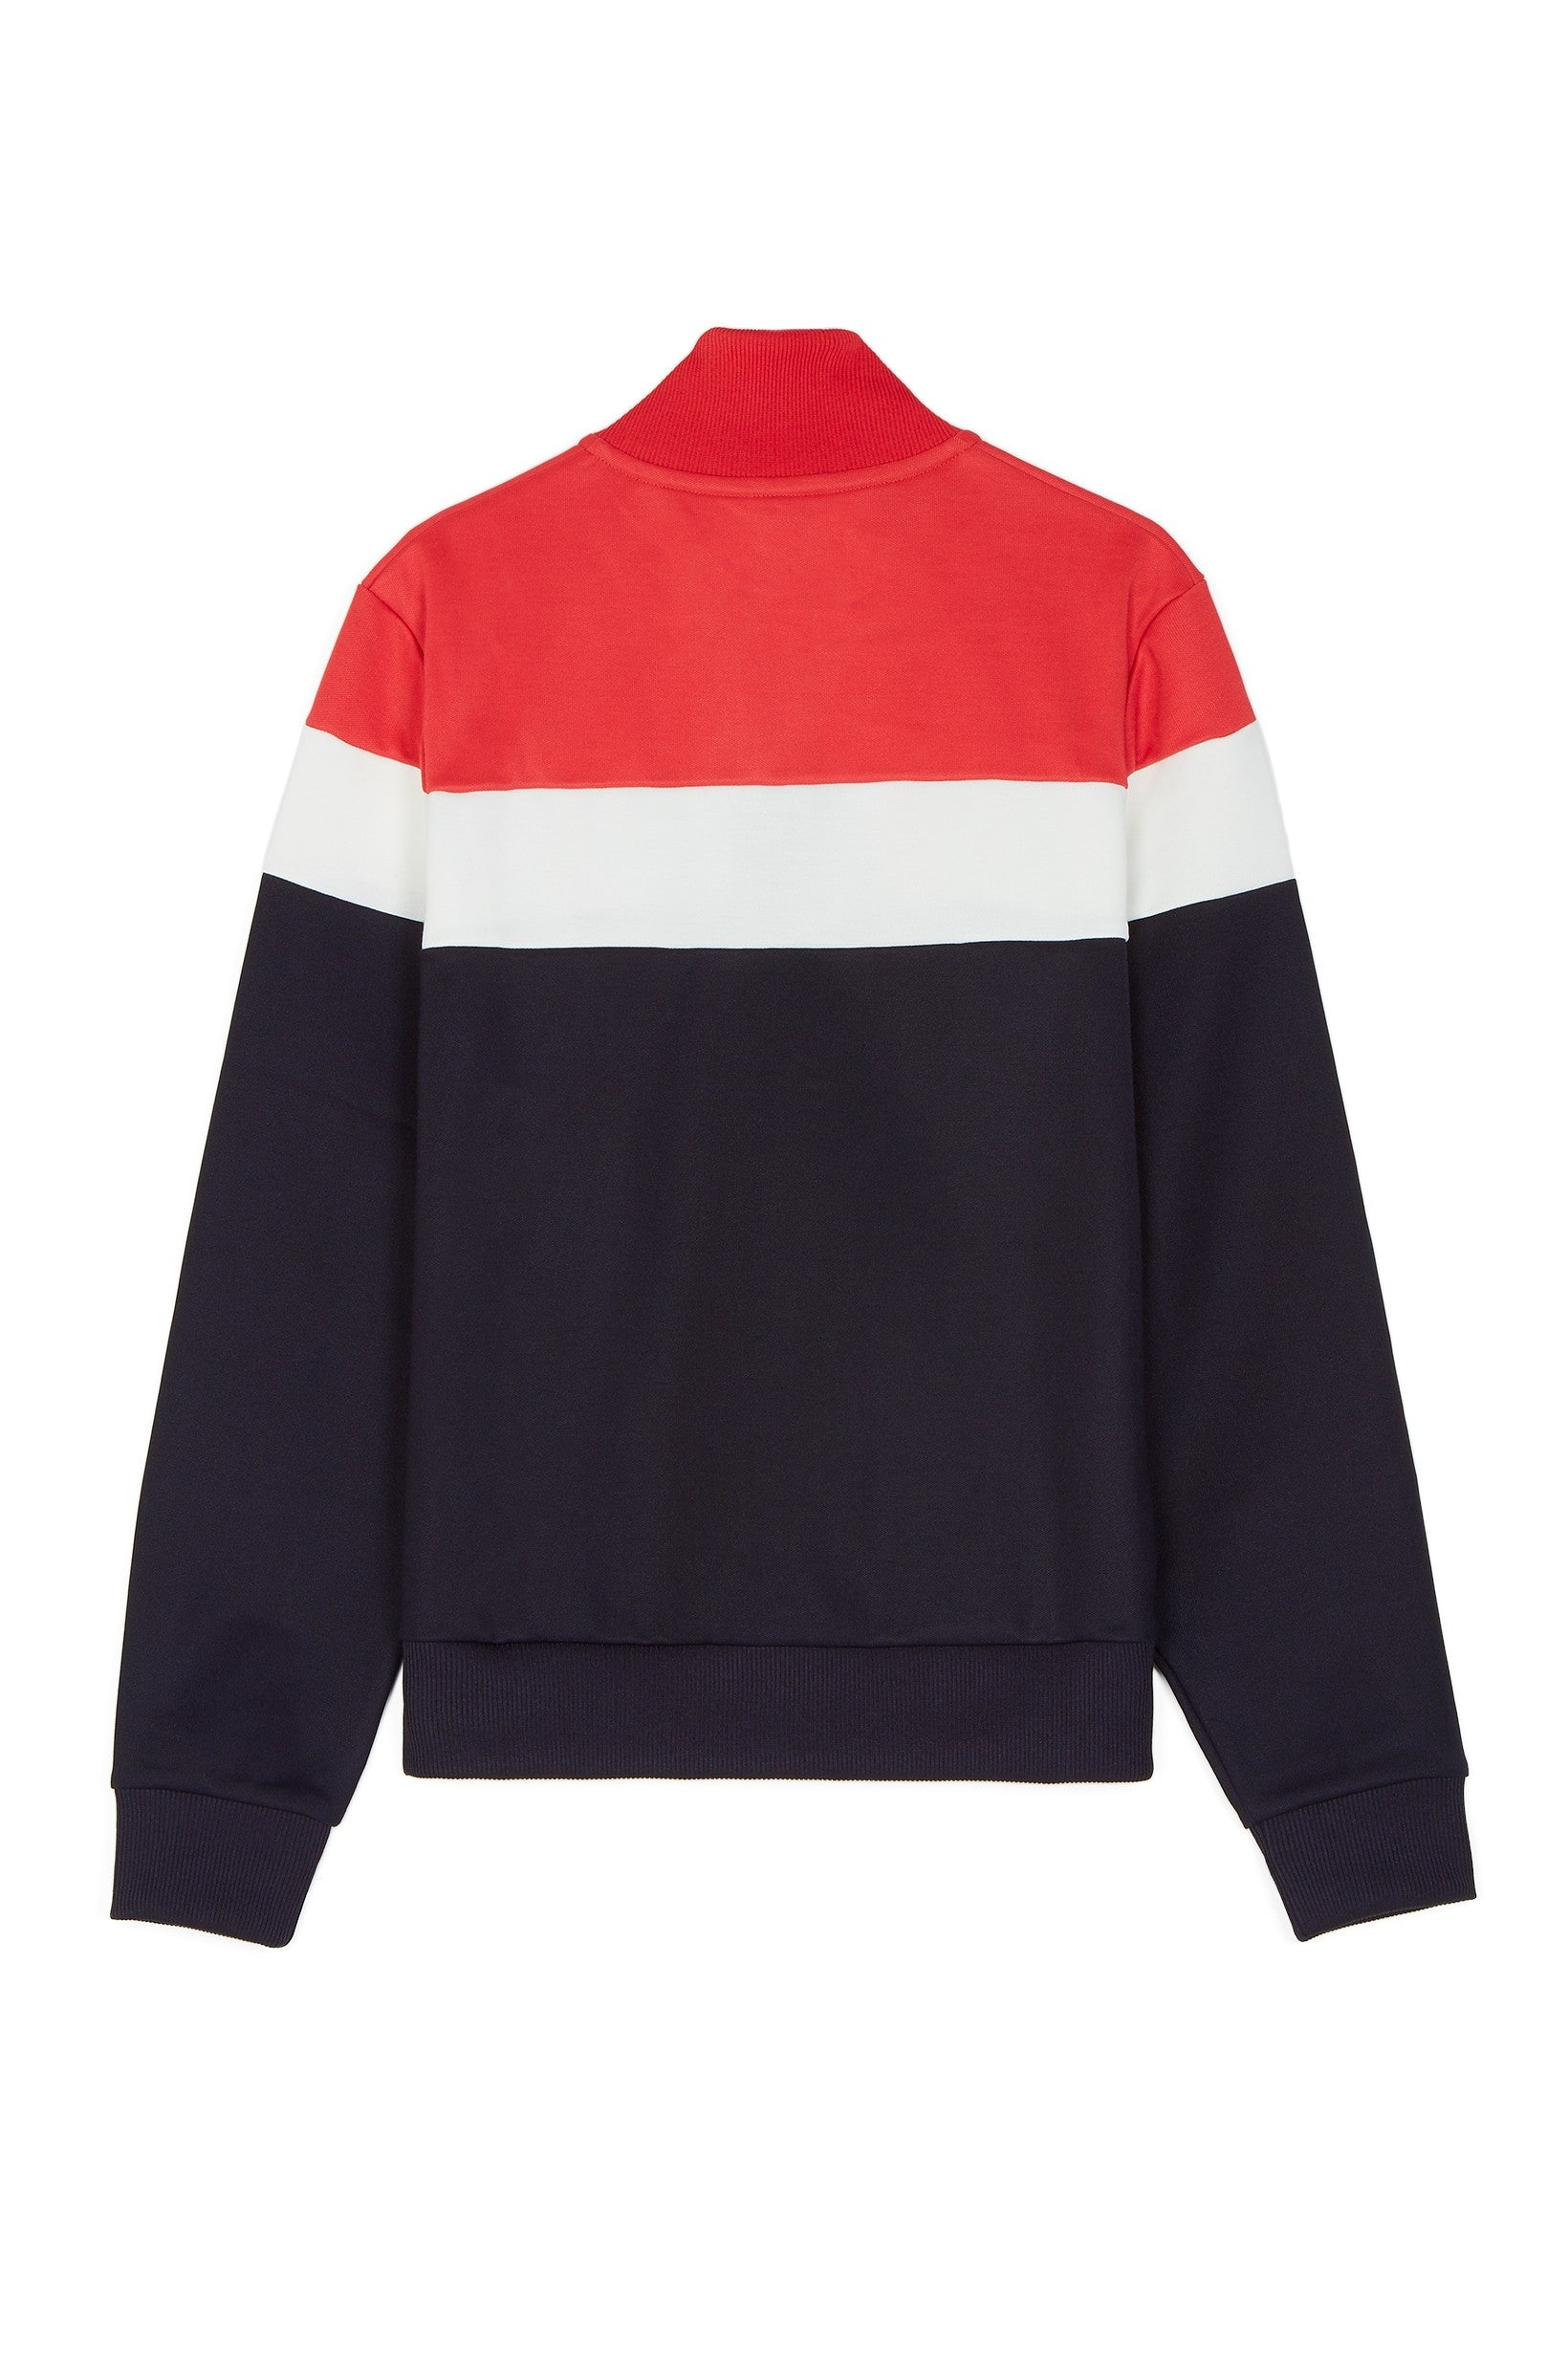 Fred Perry Sports Authentic Colour Block Track Jacket